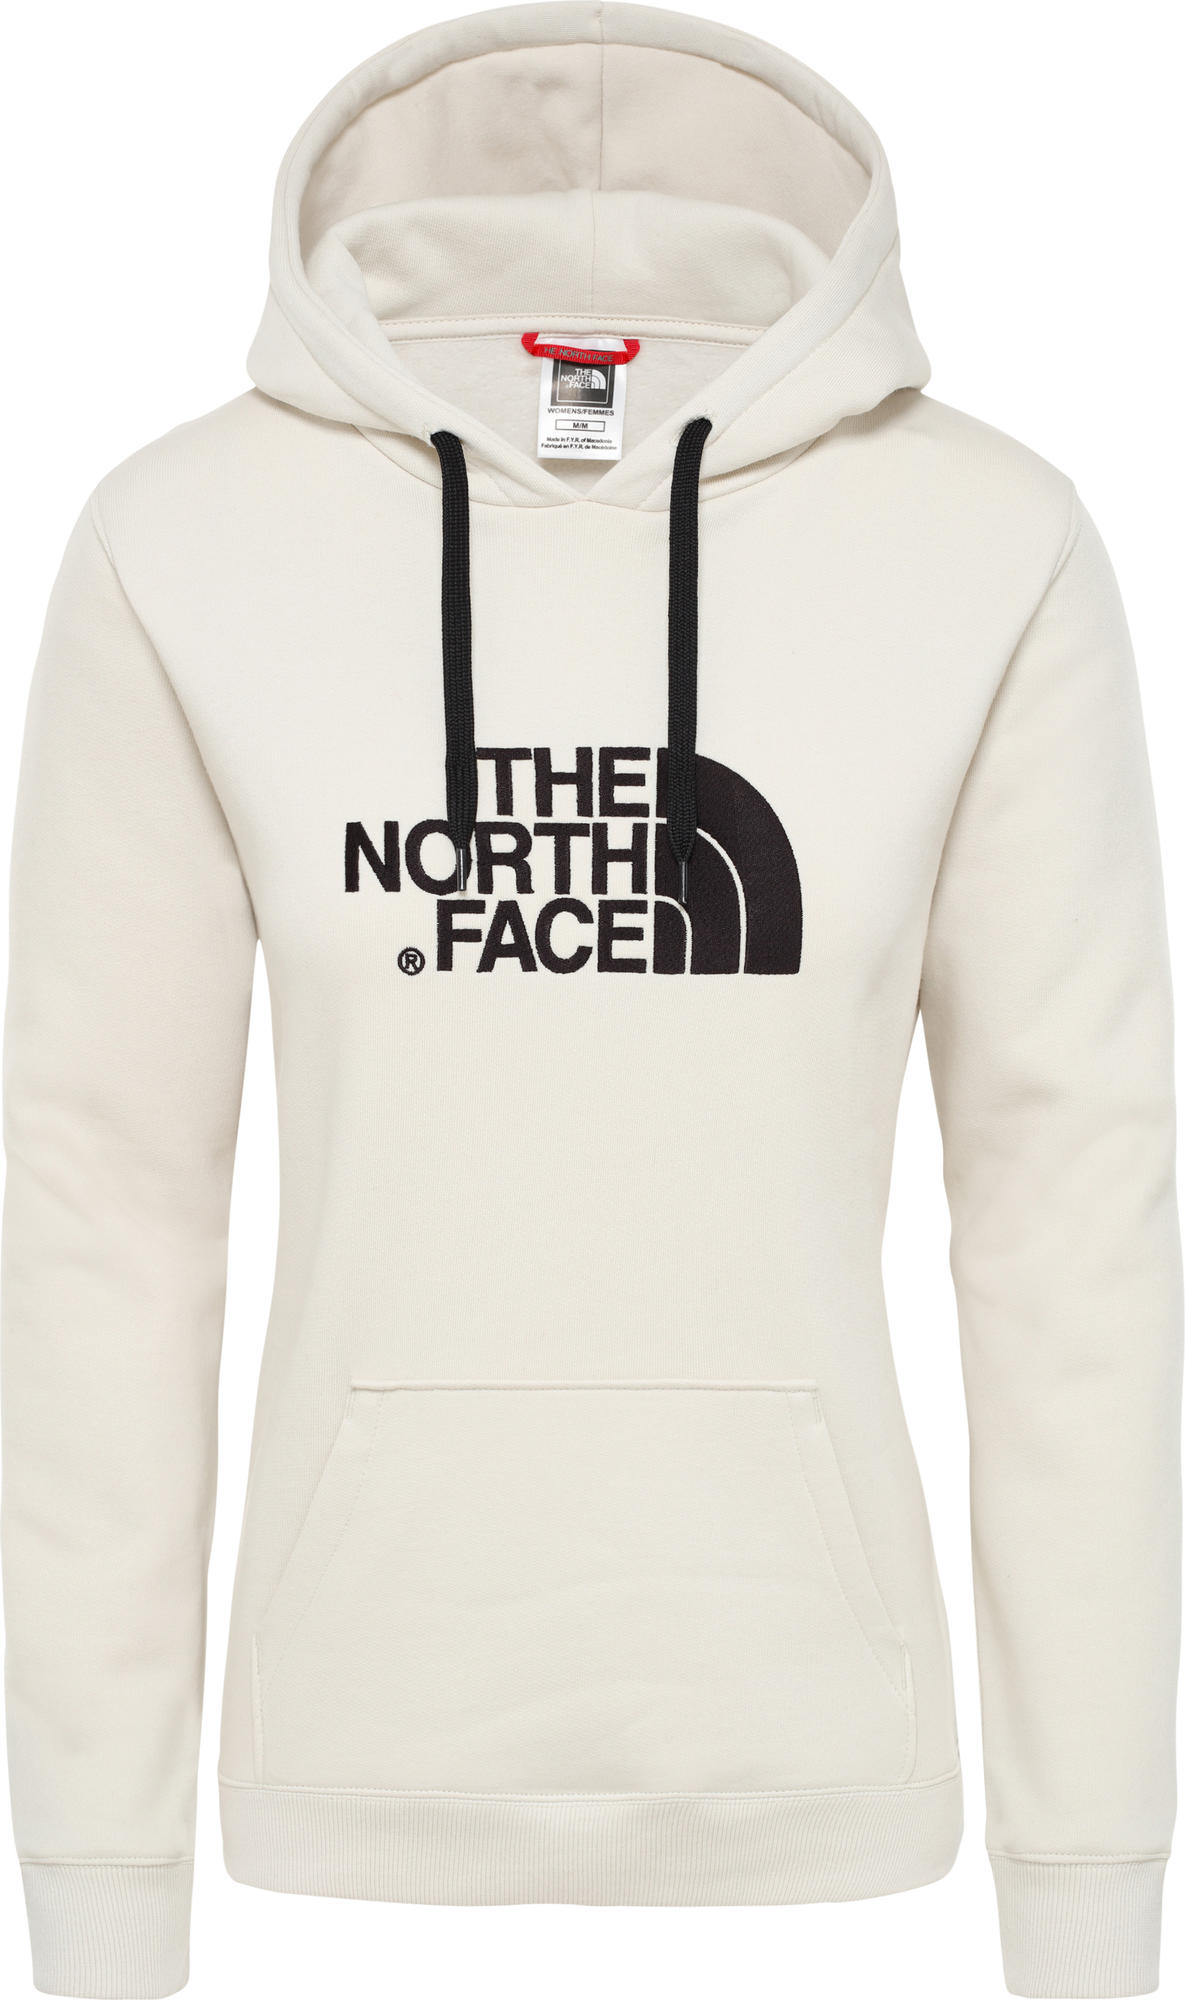 Witte dames trui The North Face Drew Peak Pull - NFOOA8MULOE1